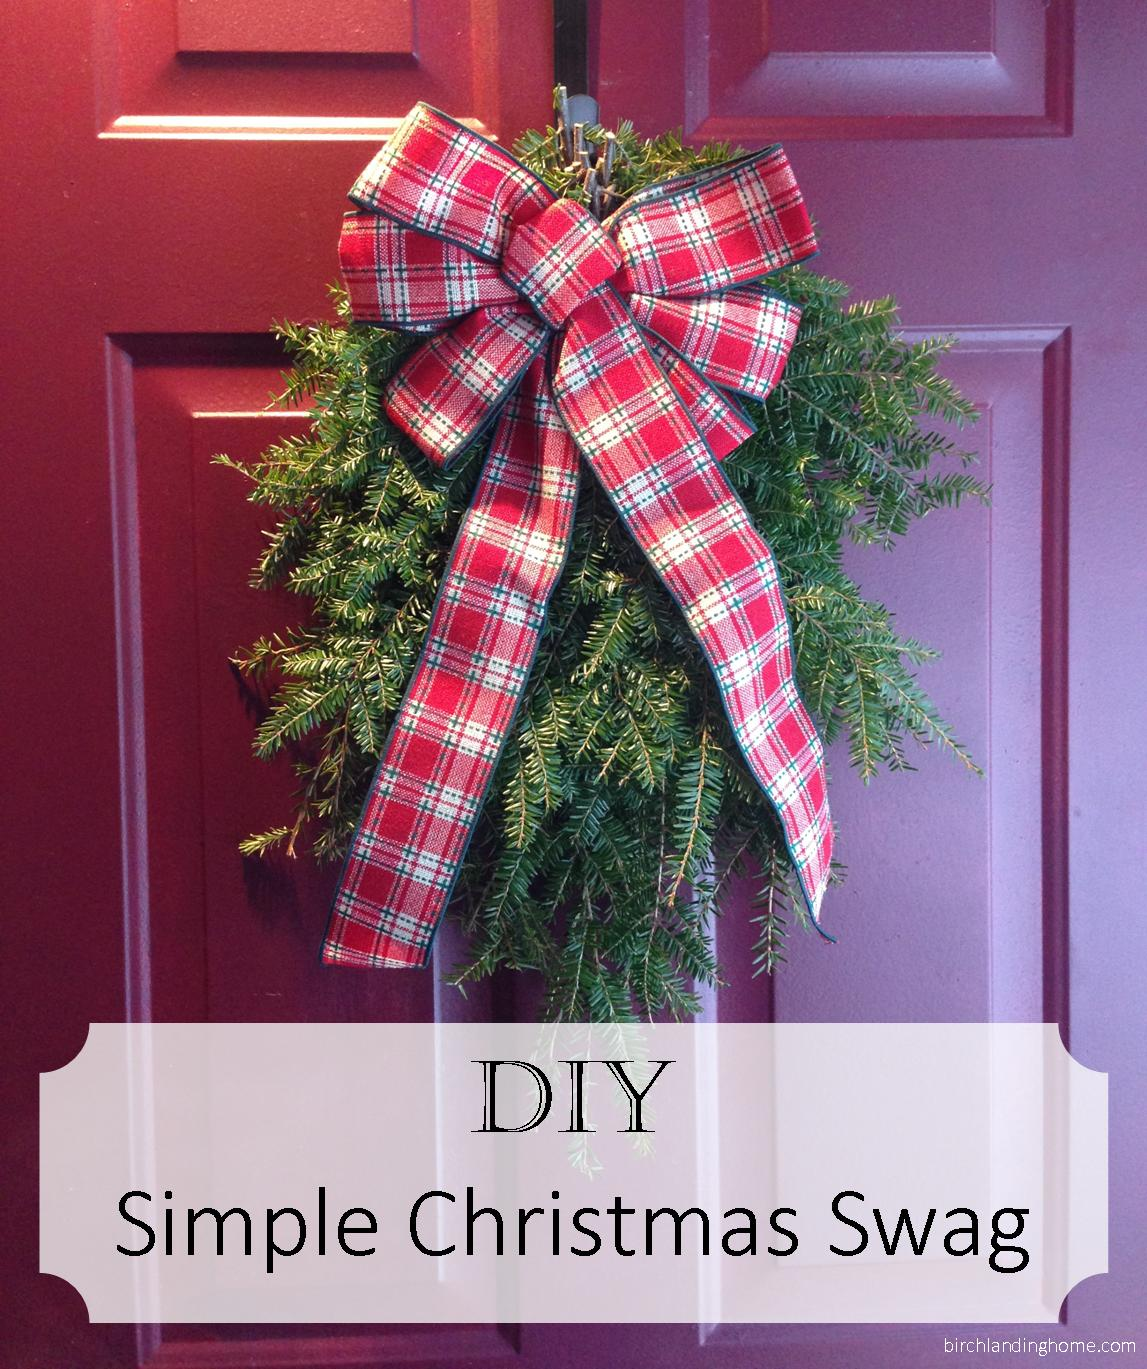 DIY Simple Christmas Swag - save money on wreaths every year